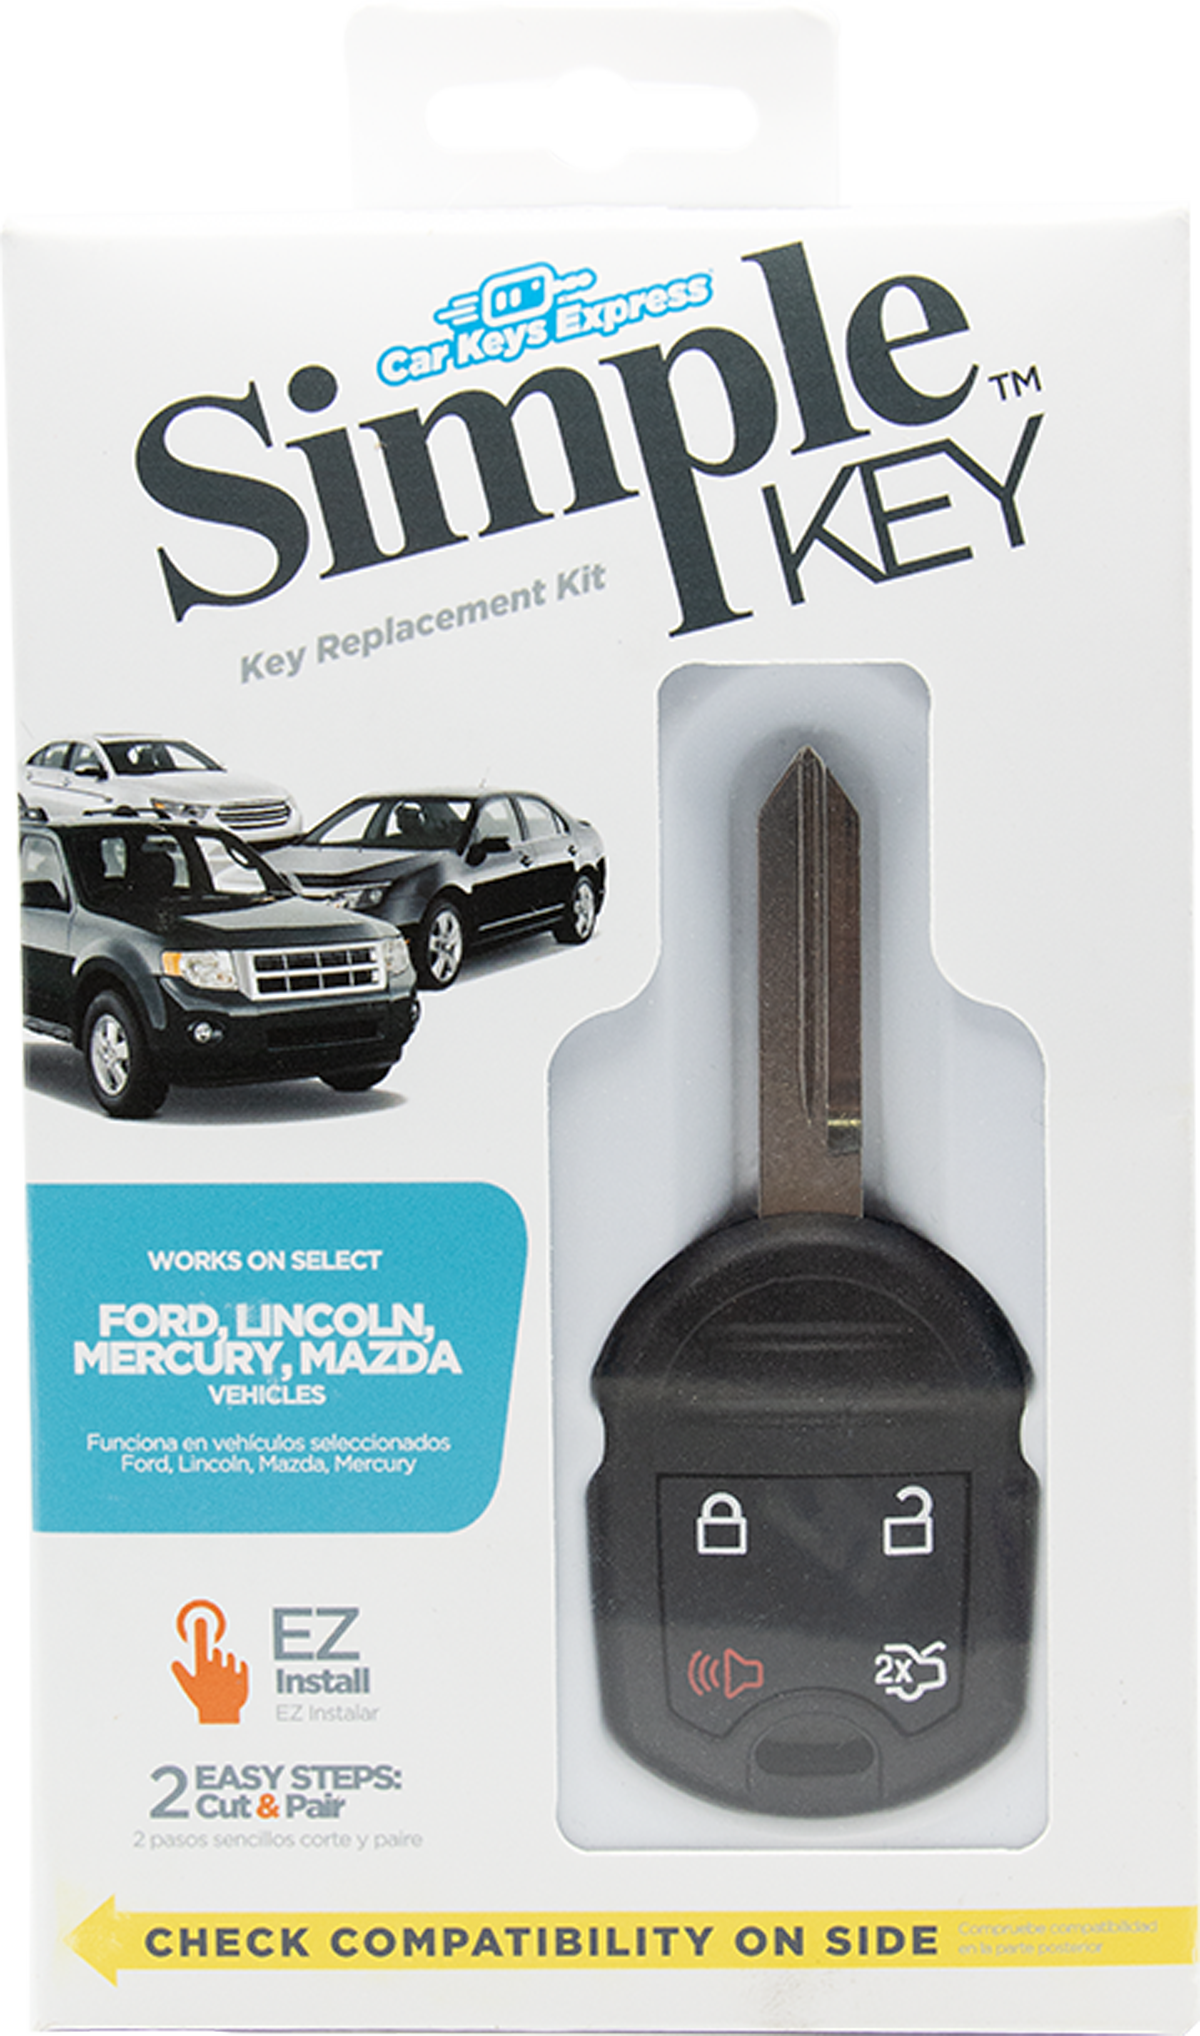 Replacement Key & Remote Combo for Ford, Lincoln, Mazda, and Mercury Vehicles